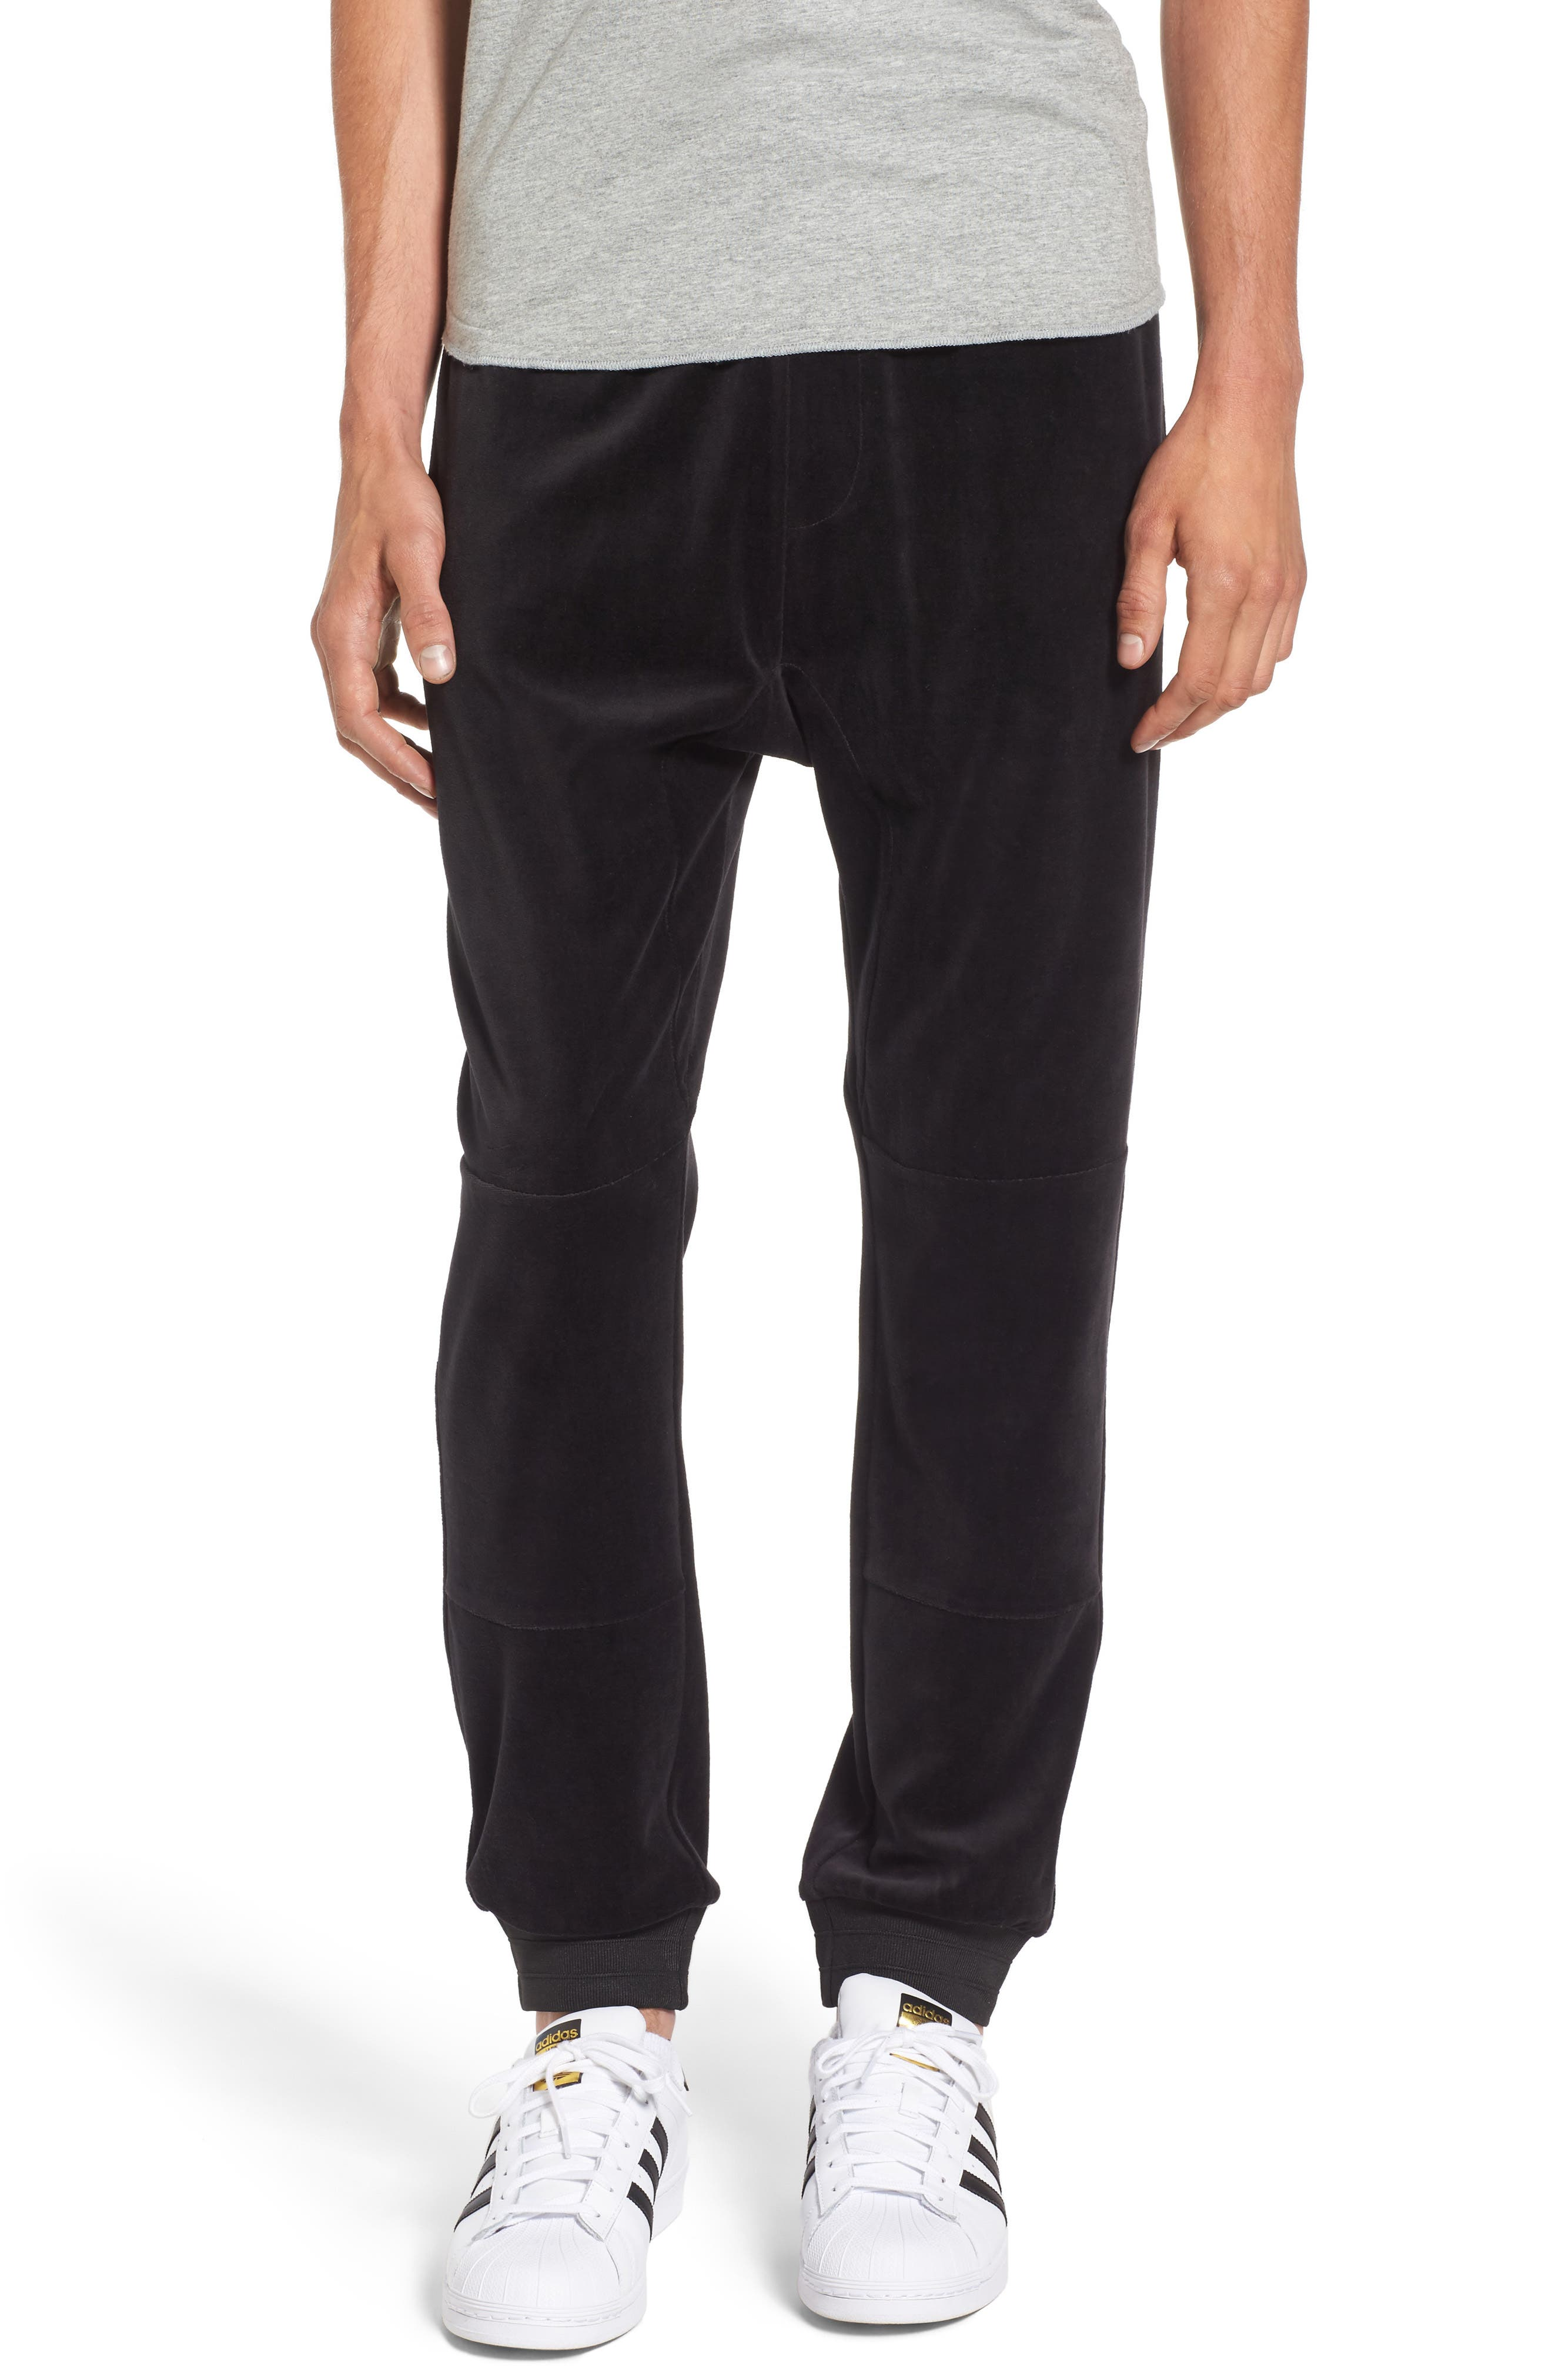 The Rail Velour Jogger Pants